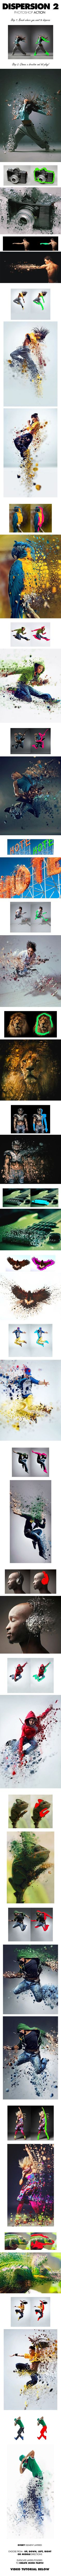 Dispersion 2 Photoshop Action  	3d, 3d dispersion, action, advanced, atn, detailed, digital art, dispersion, dissolve, explode, modern, parts, photo effect, photography, photomanipulation, photoshop, professional, psd, realistic, shatter, vfx